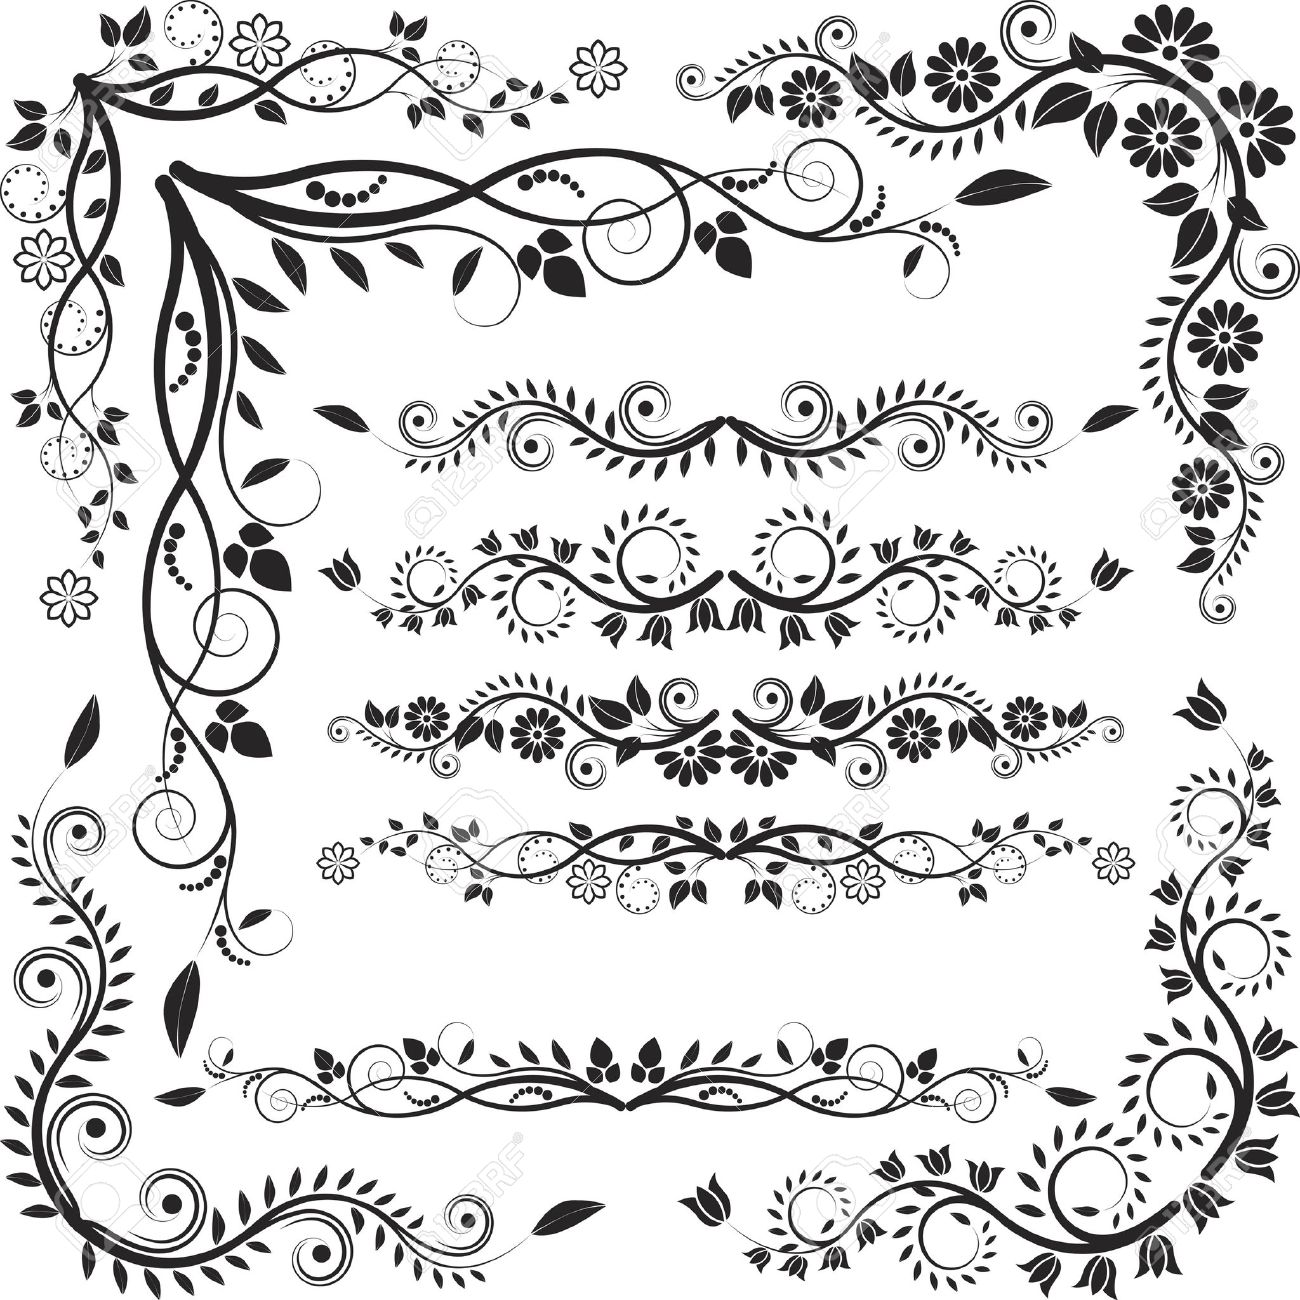 1300x1300 Floral Corners Borders Royalty Free Cliparts, Vectors,